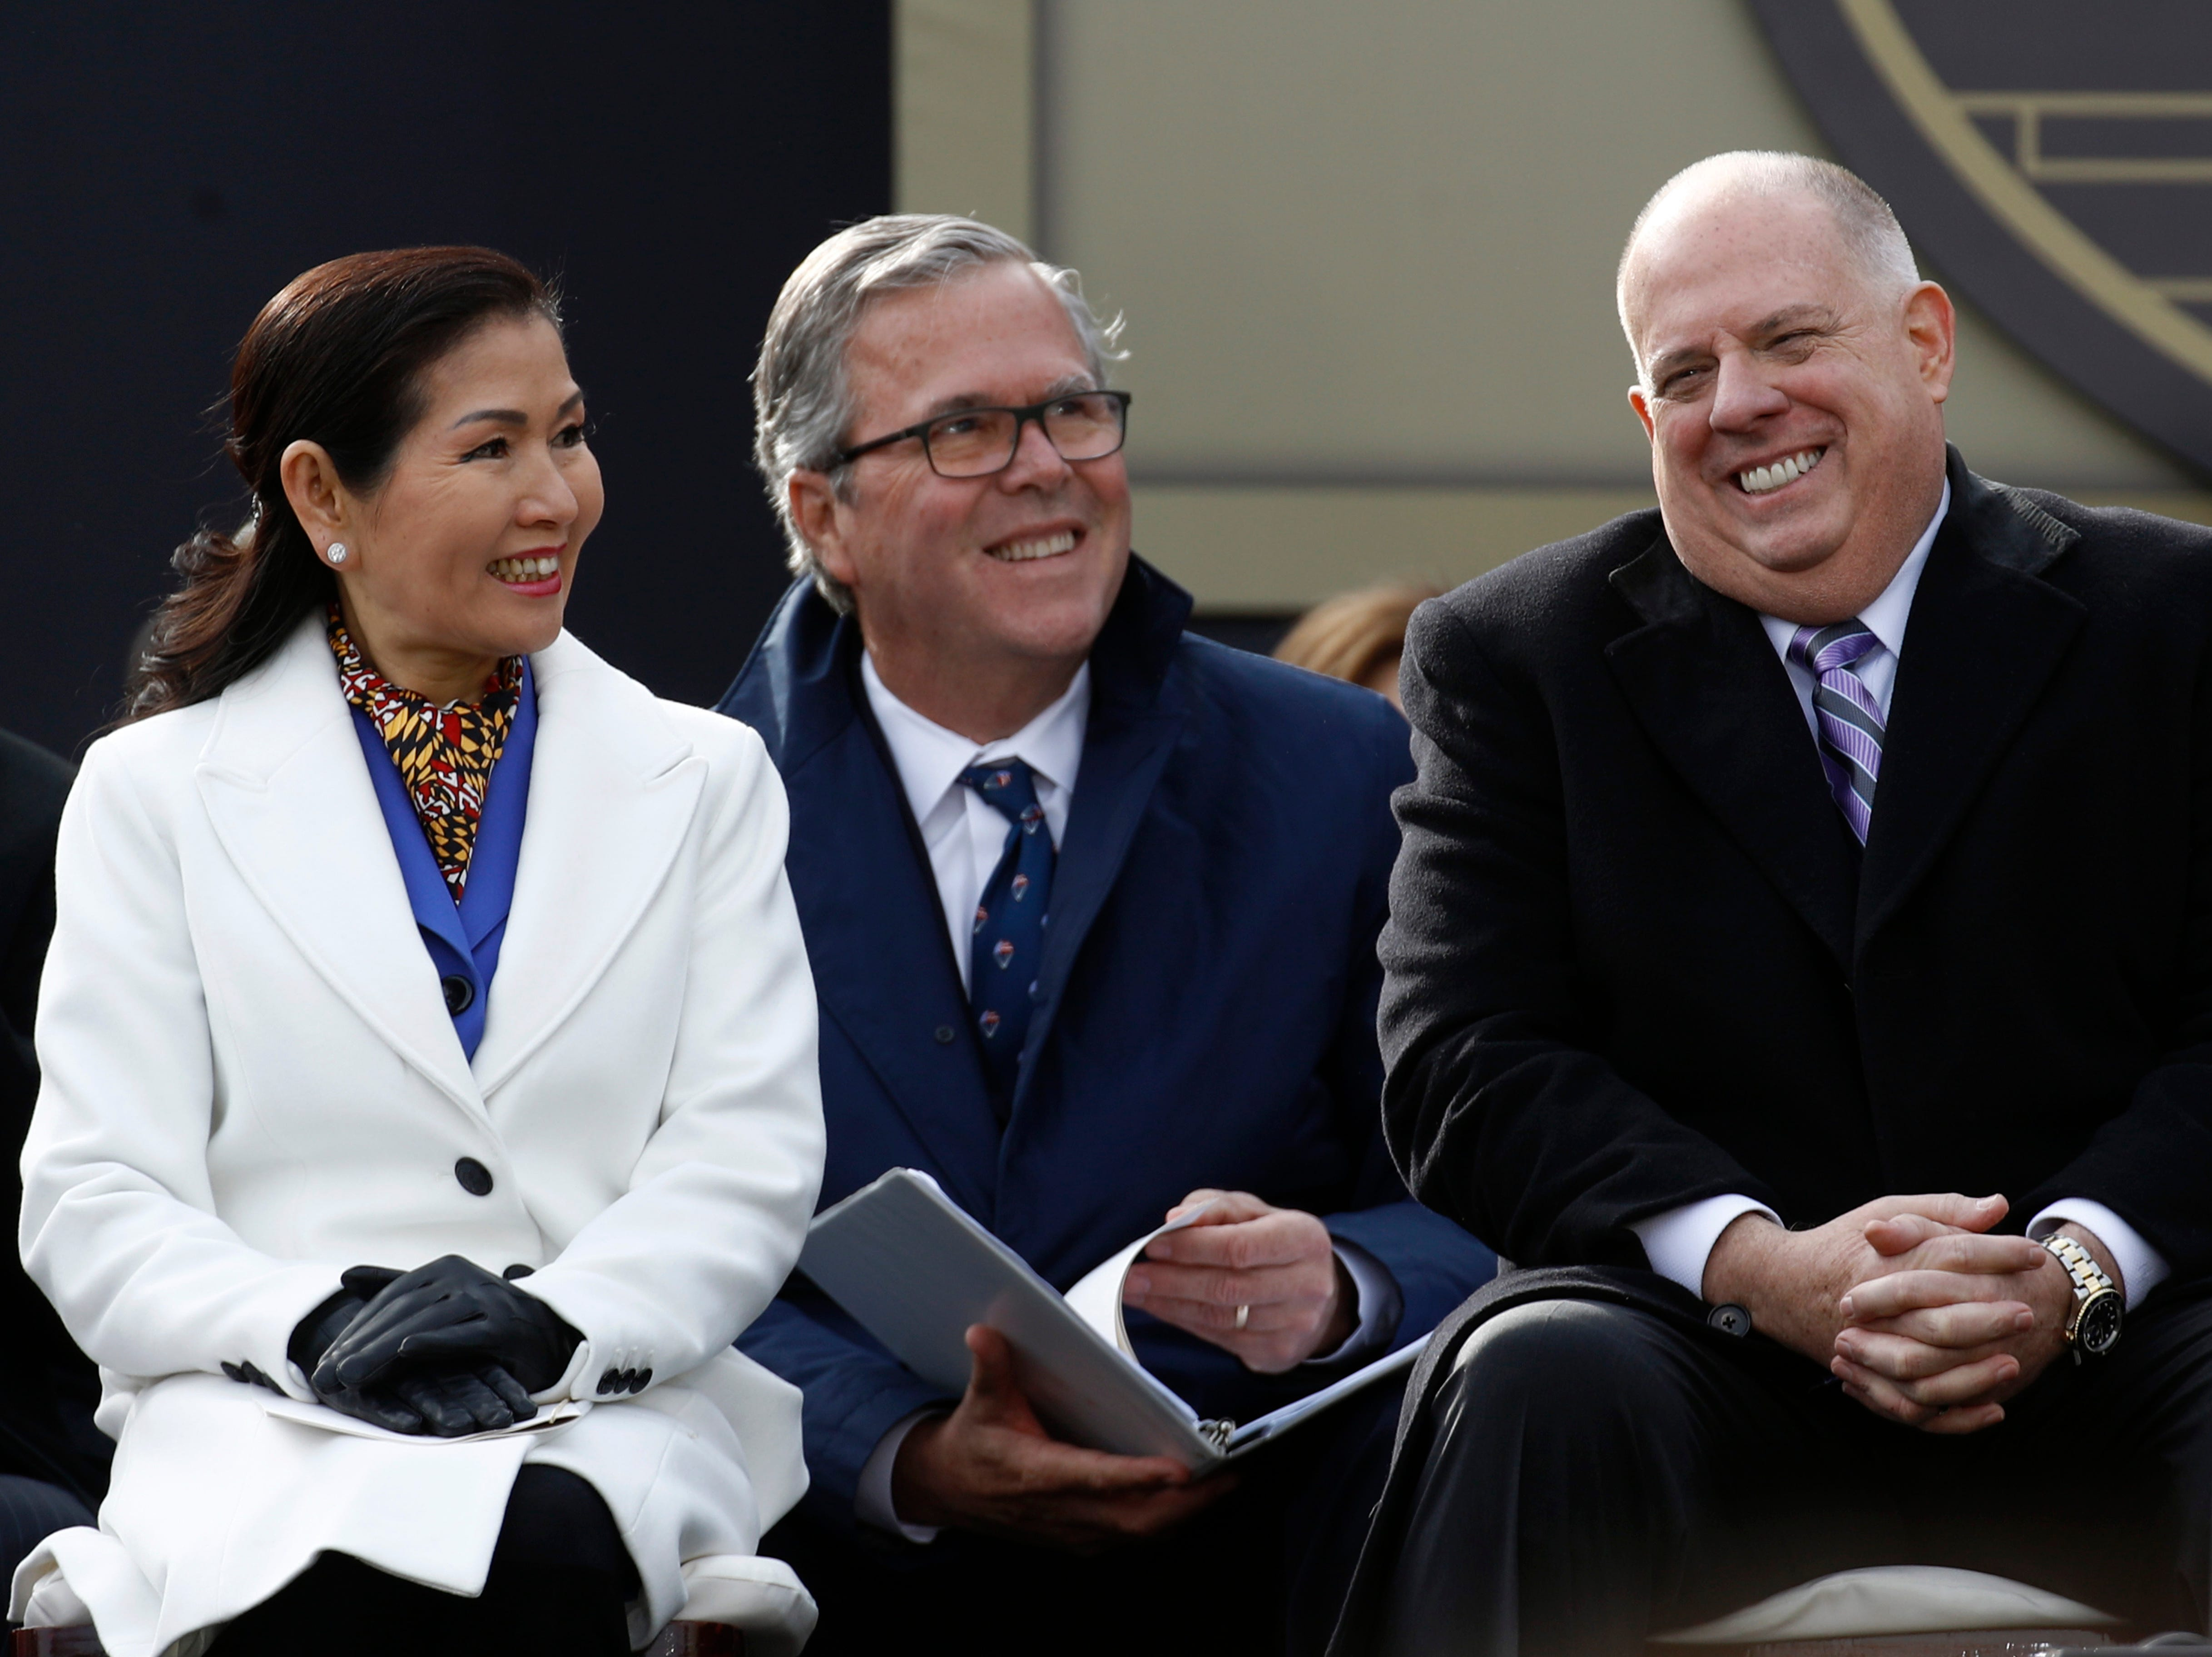 Maryland Gov. Larry Hogan, right, laughs alongside first lady Yumi Hogan, left, and former Florida Gov. Jeb Bush during Hogan's inauguration ceremony Wednesday, Jan. 16, 2019, in Annapolis.